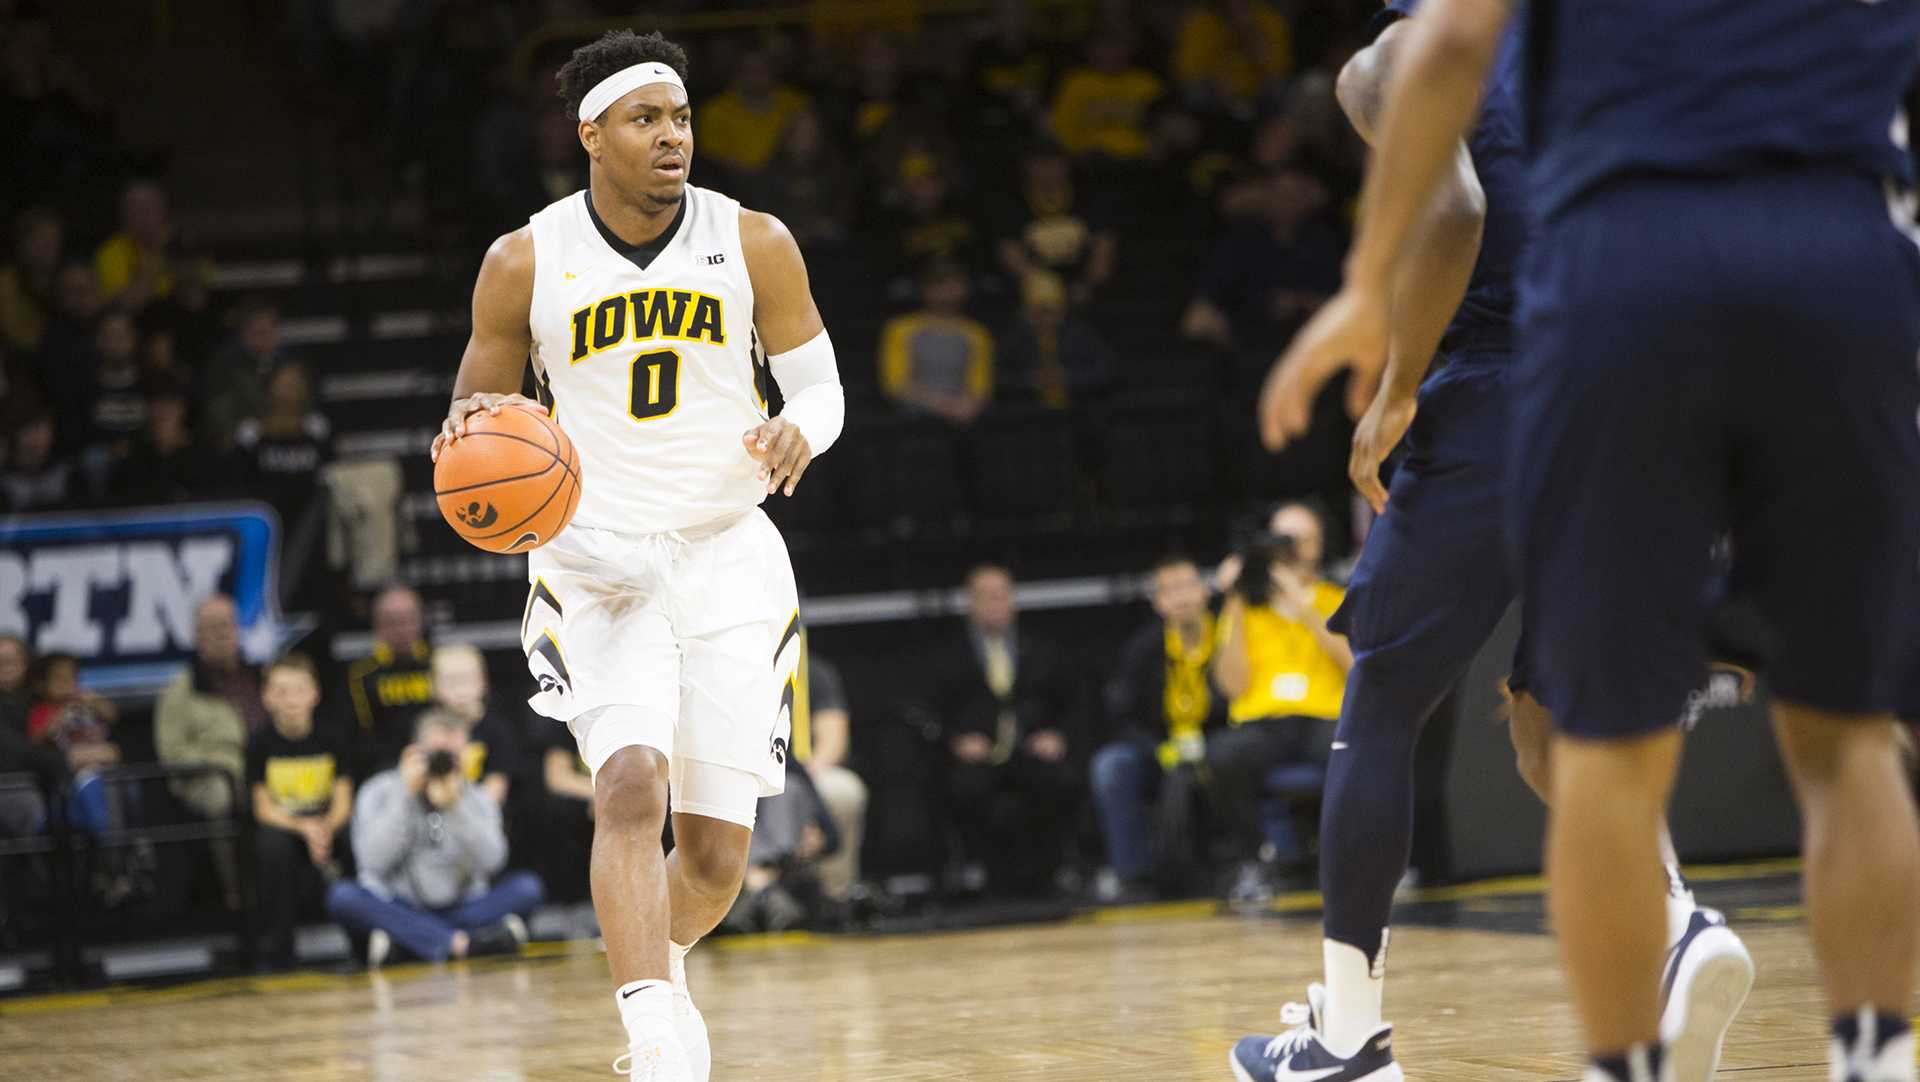 Iowa forward Ahmad Wagner dribbles up court during an Iowa/Penn State men's basketball game in Carver-Hawkeye Arena on Saturday, Dec. 2, 2017. The Nittany Lions defeated the Hawkeyes, 77-73. (Joseph Cress/The Daily Iowan)